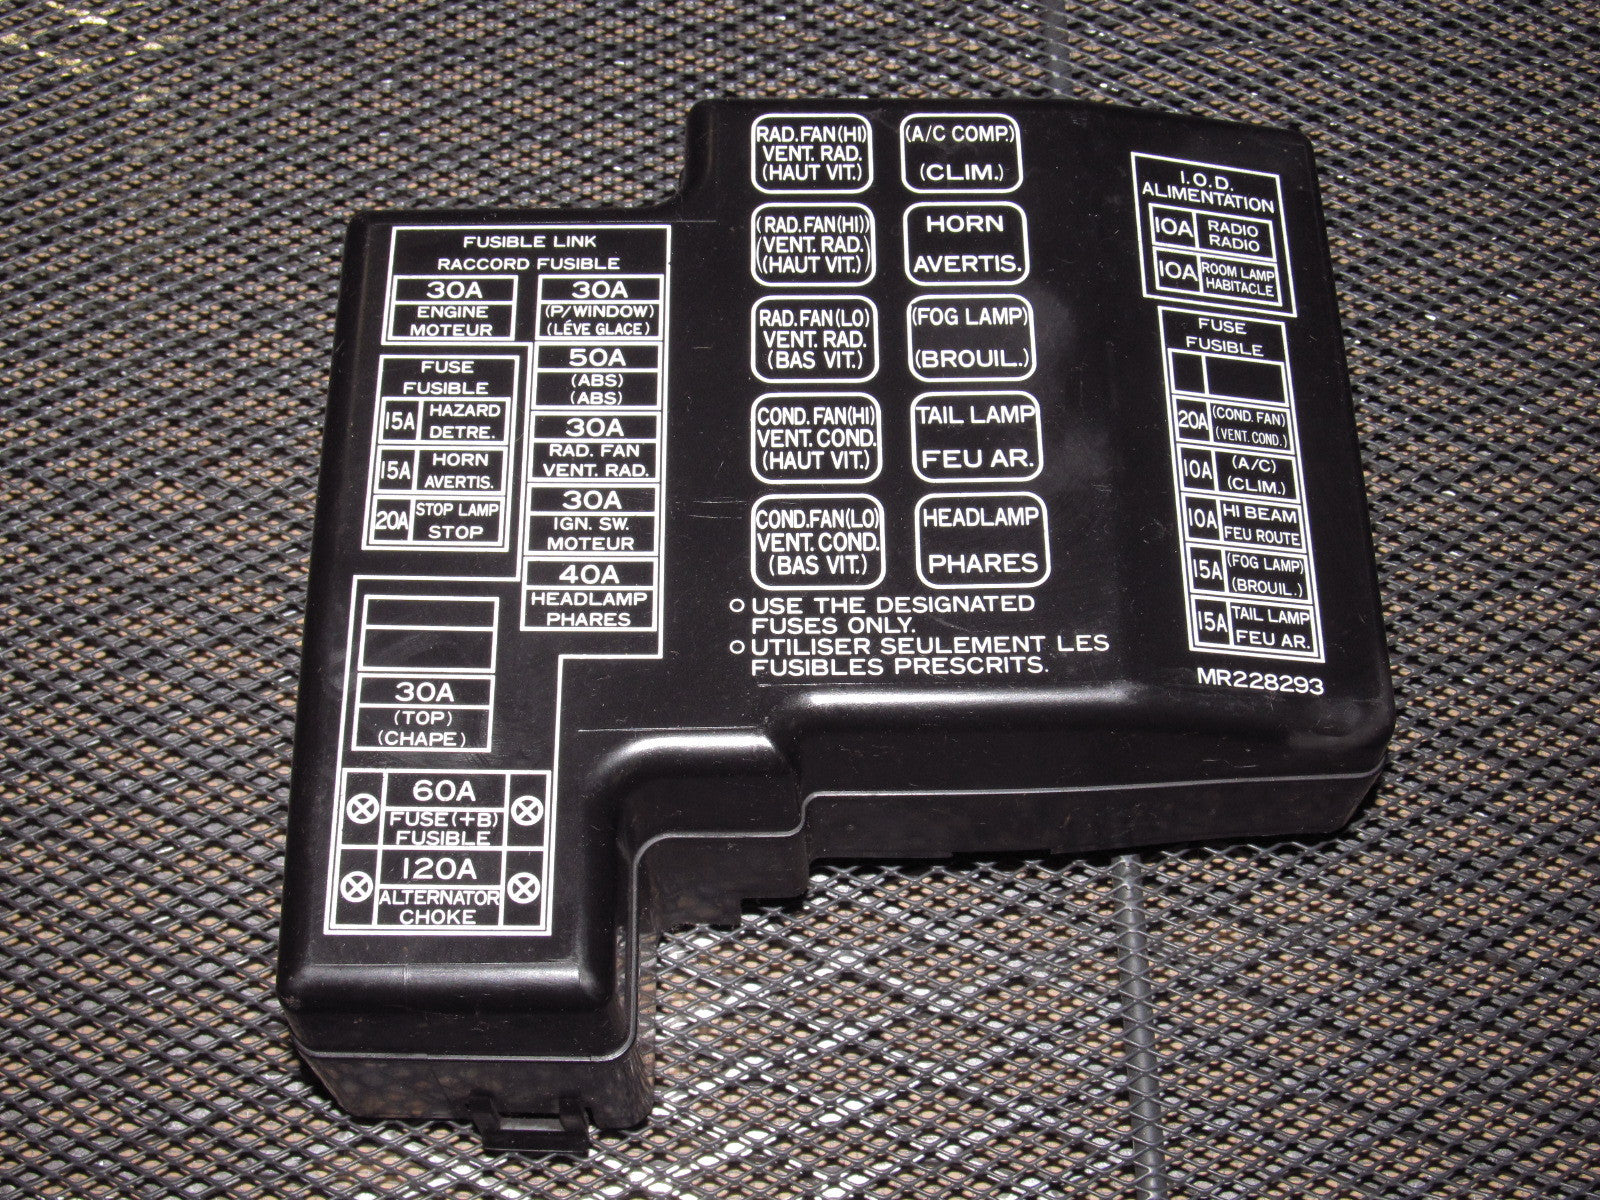 97 98 99 Mitsubishi Eclipse Oem Engine Fuse Box Cover Autopartone. 97 98 99 Mitsubishi Eclipse Oem Engine Fuse Box Cover. Mitsubishi. 97 Mitsubishi Eclipse Belt Diagram At Scoala.co